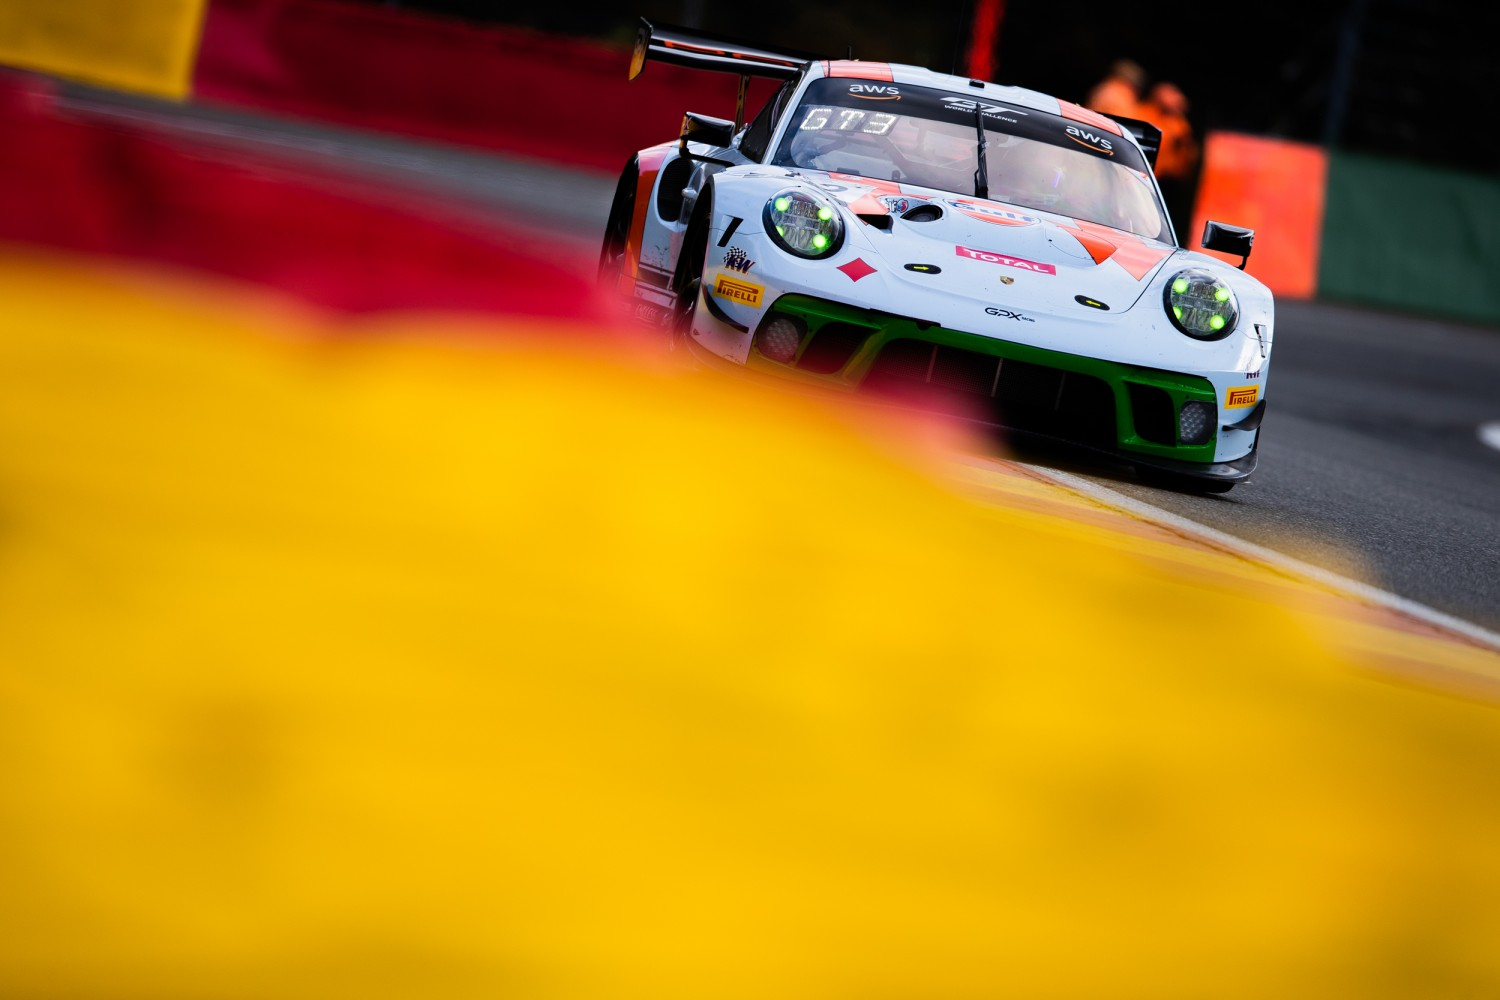 GPX Racing Porsche fastest overall as chequered flag falls on Total 24 Hours of Spa test days